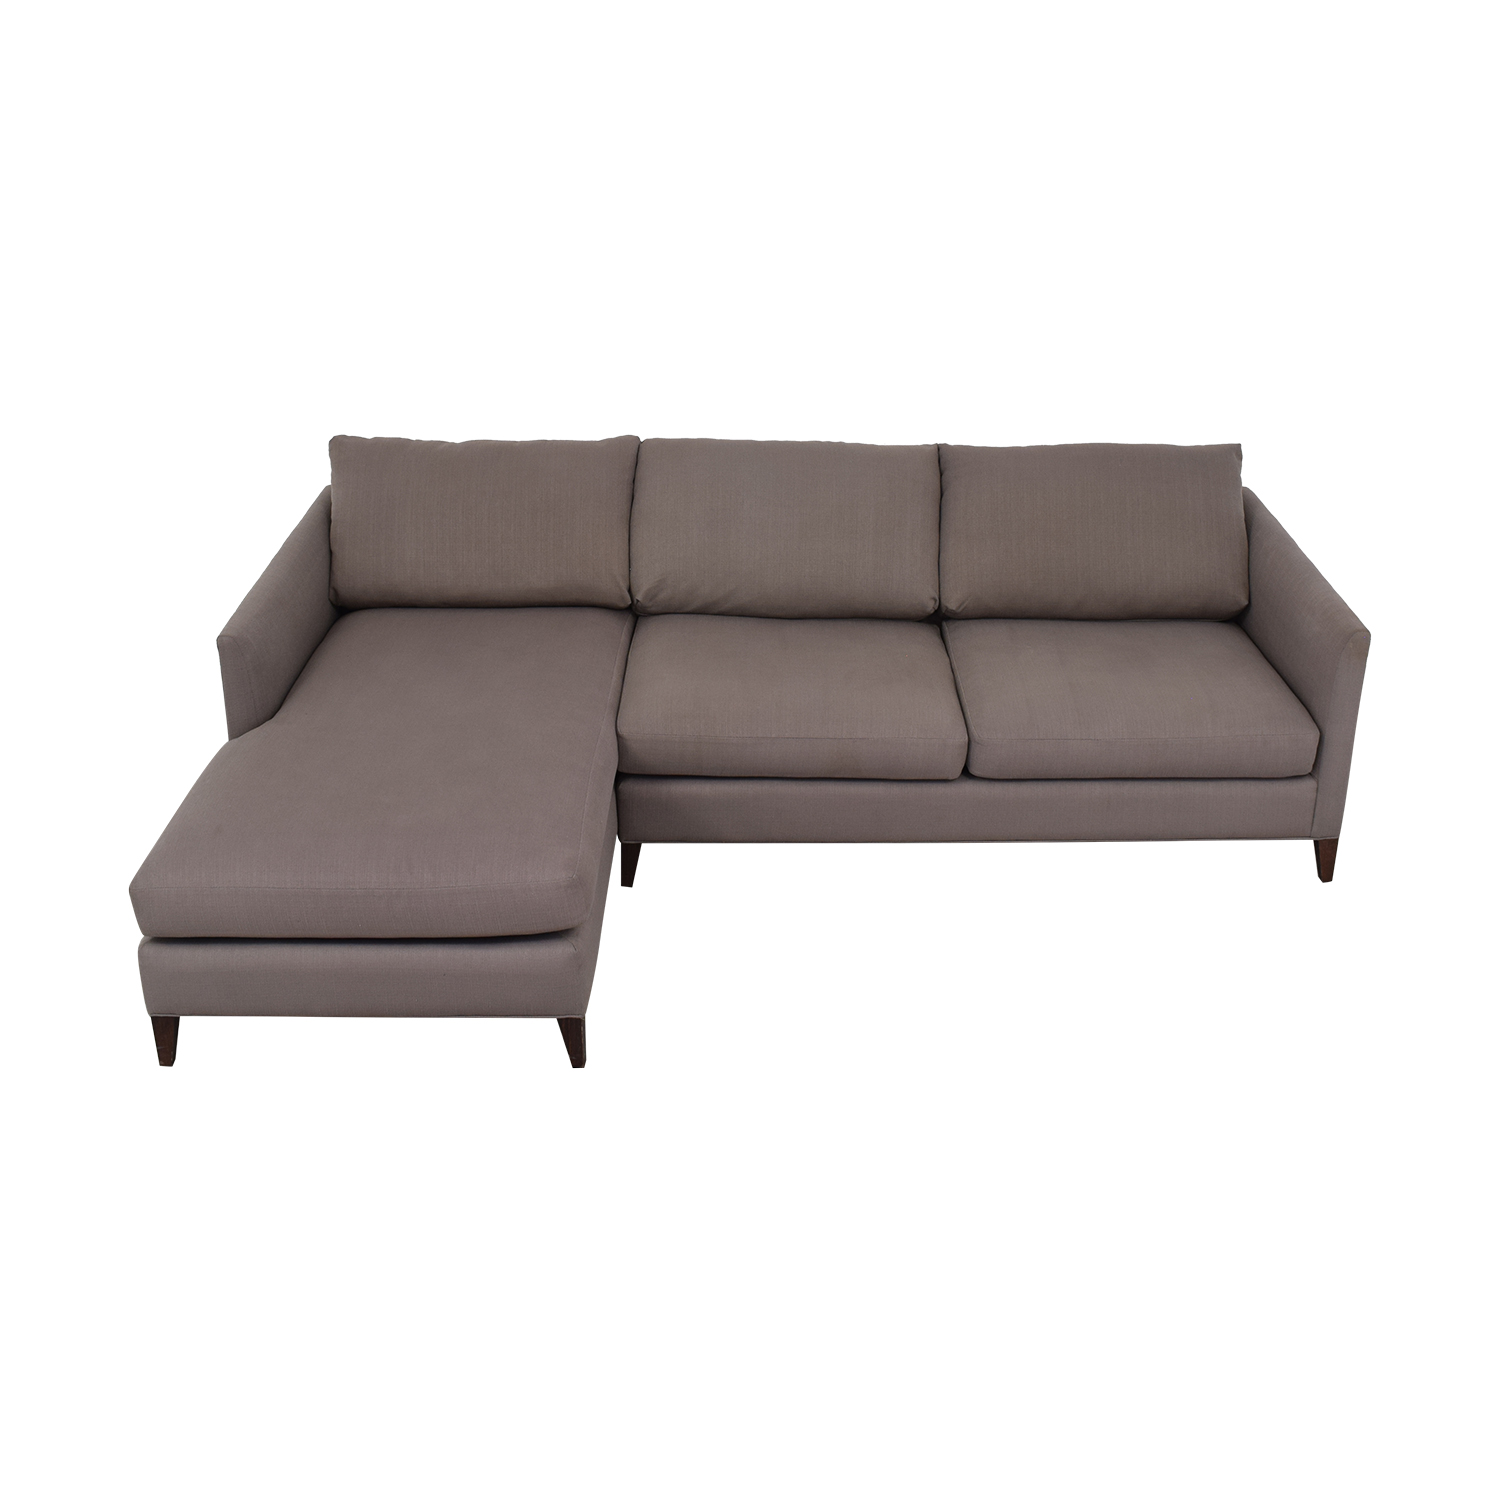 Crate & Barrel Crate & Barrel Lounge Sofa with Chaise nyc